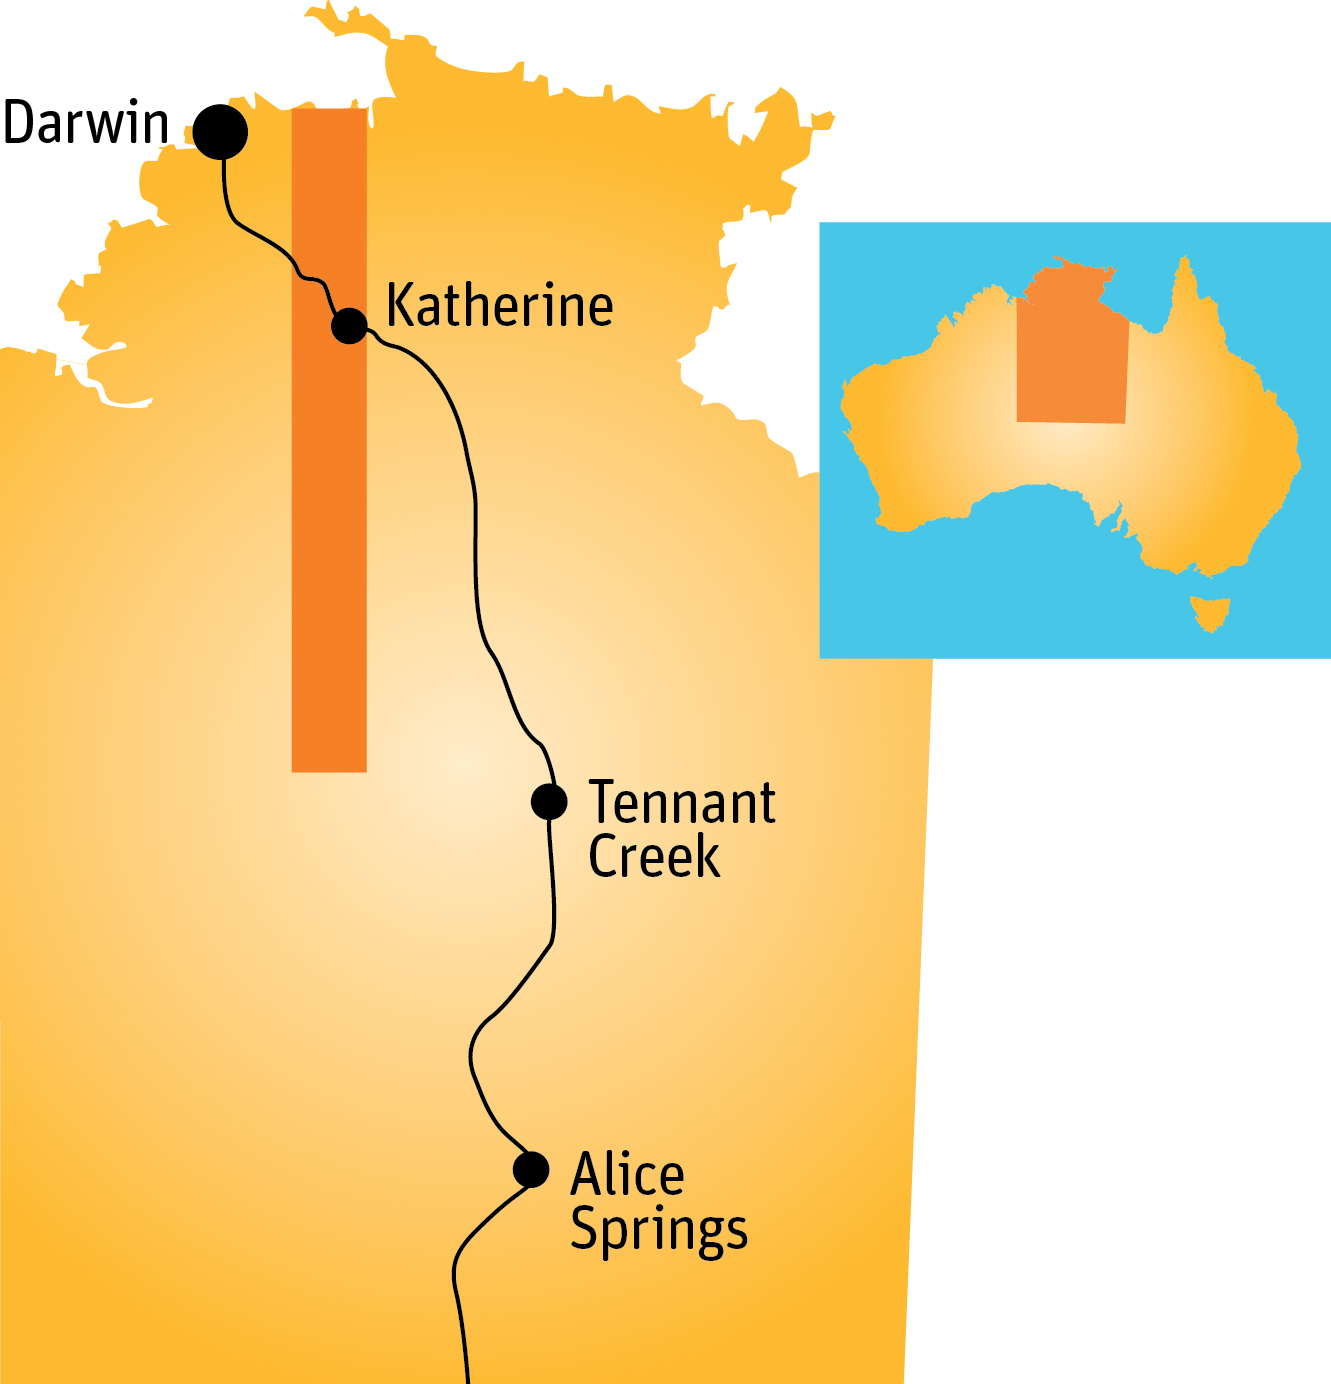 Map of the northern territory showing a transect line extending from about Darwin in the north down to about level with Tennant Creek in the south